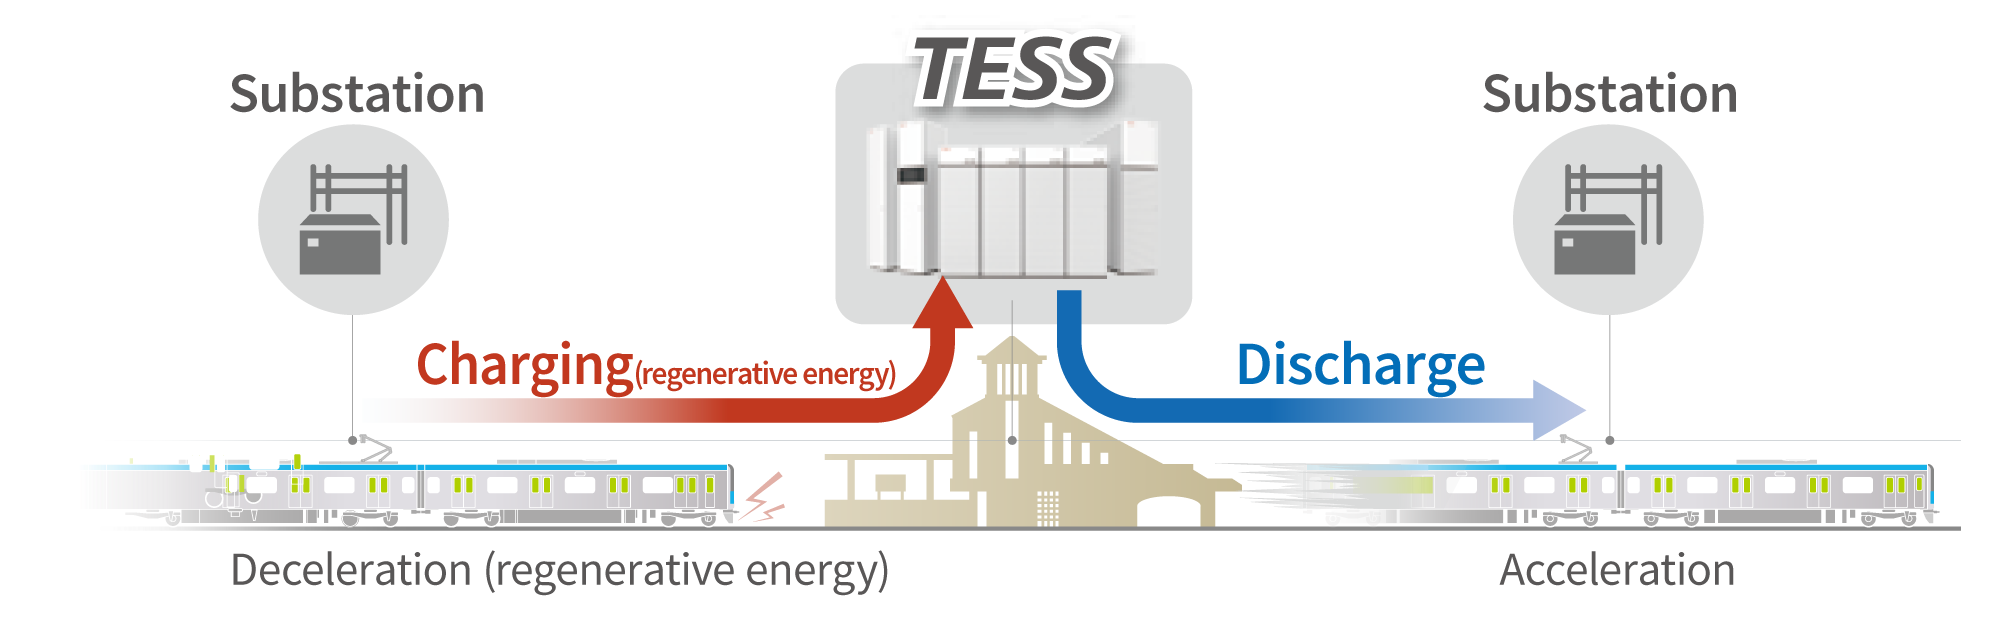 Image of how TESS works